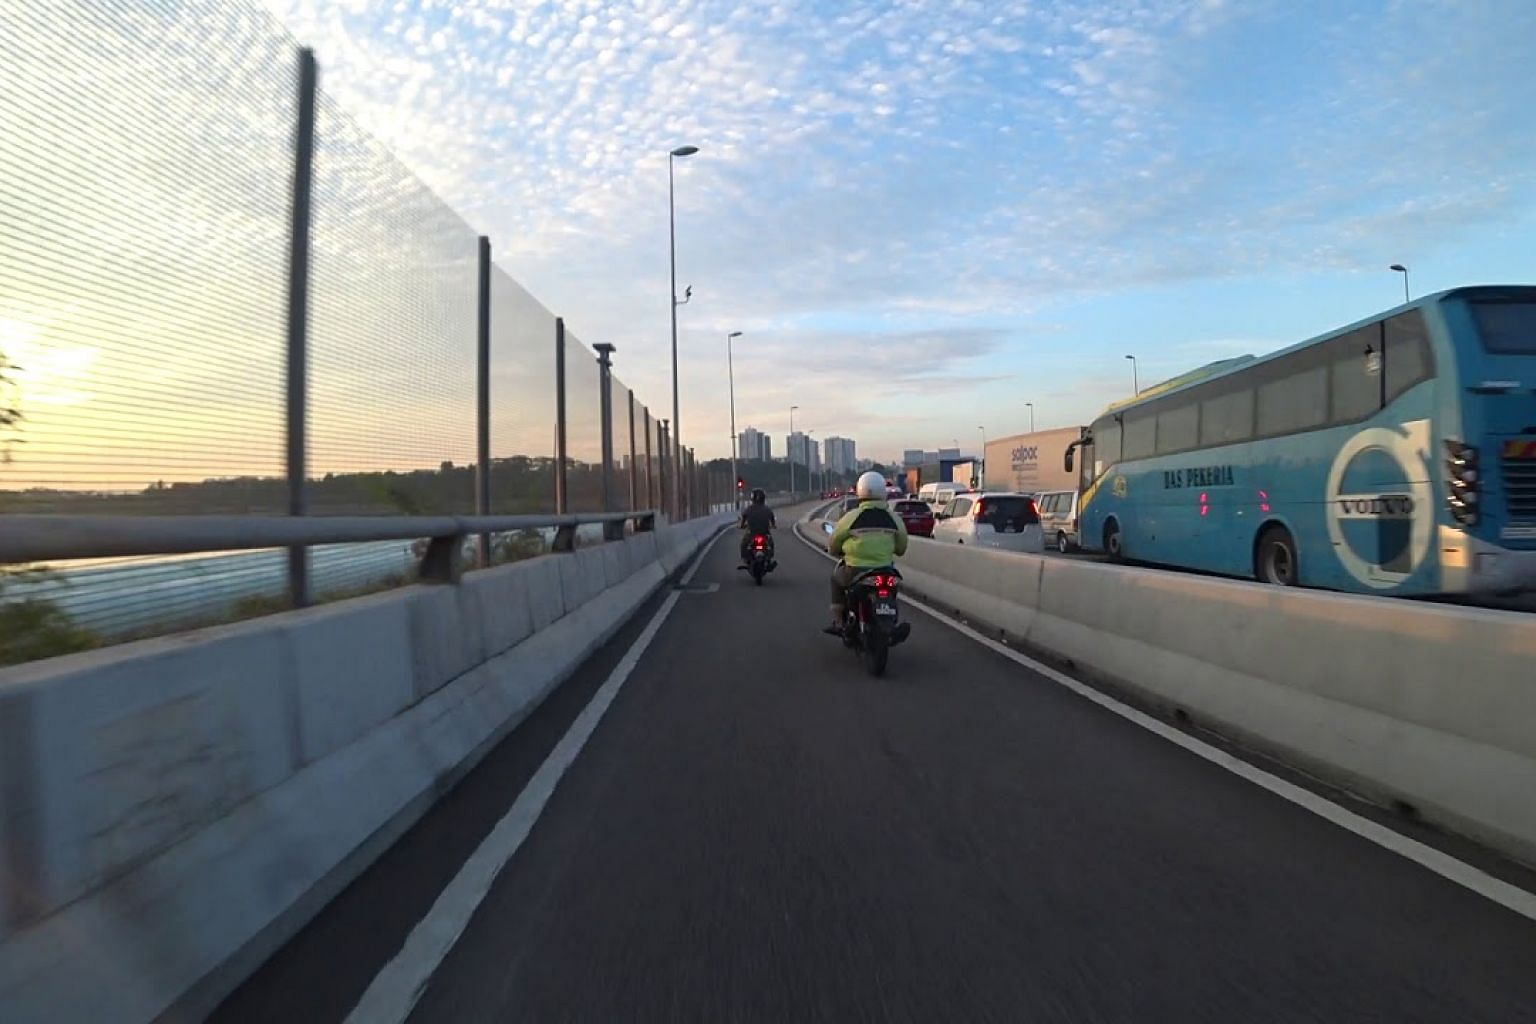 Jam at Woodlands Checkpoint on April 4, 2019